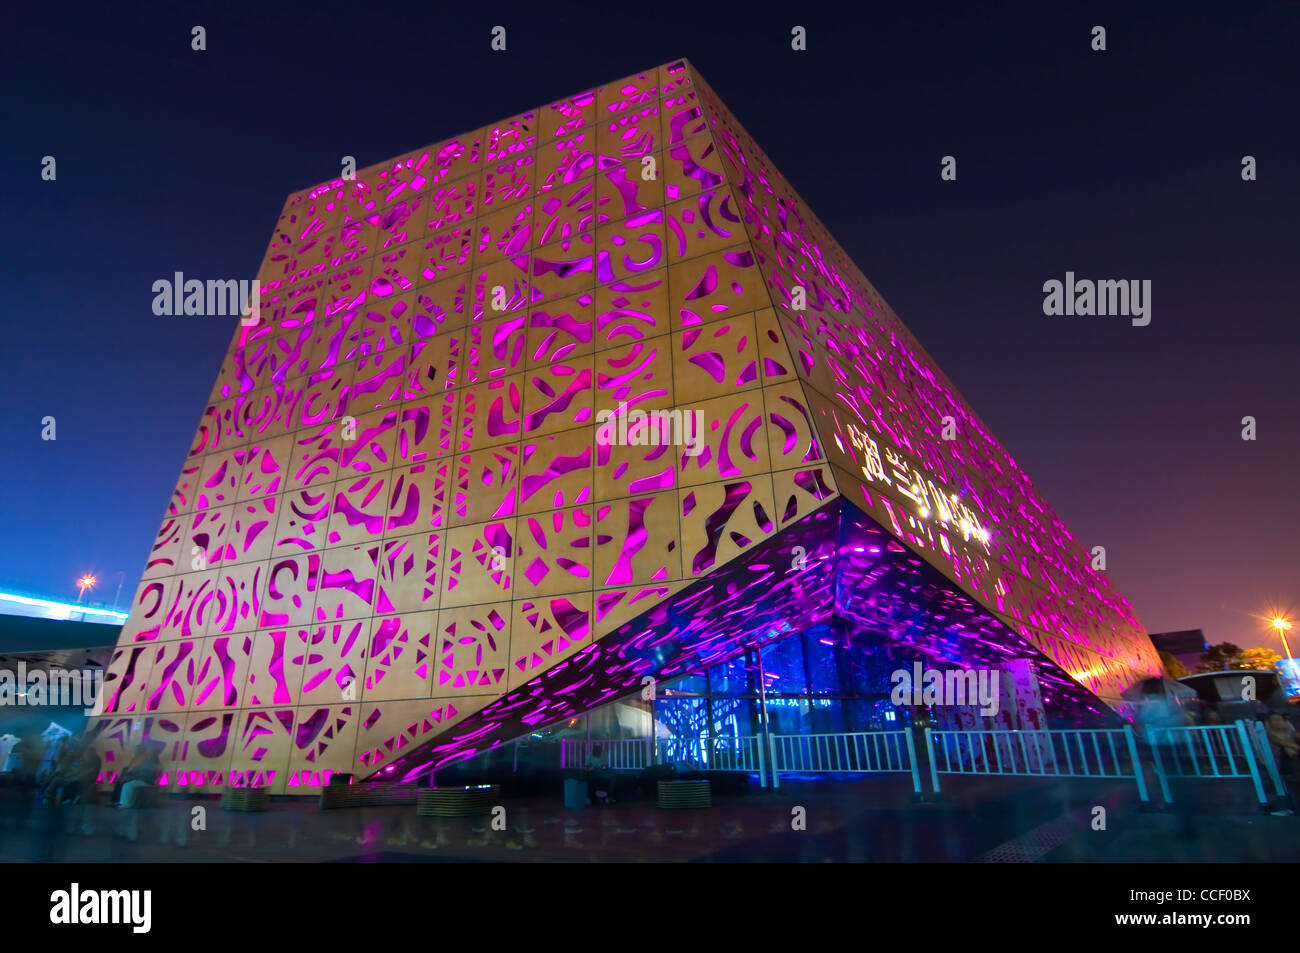 Polish Pavilion Shanghai Expo 2010 Stock Photos \u0026 Polish Pavilion ...